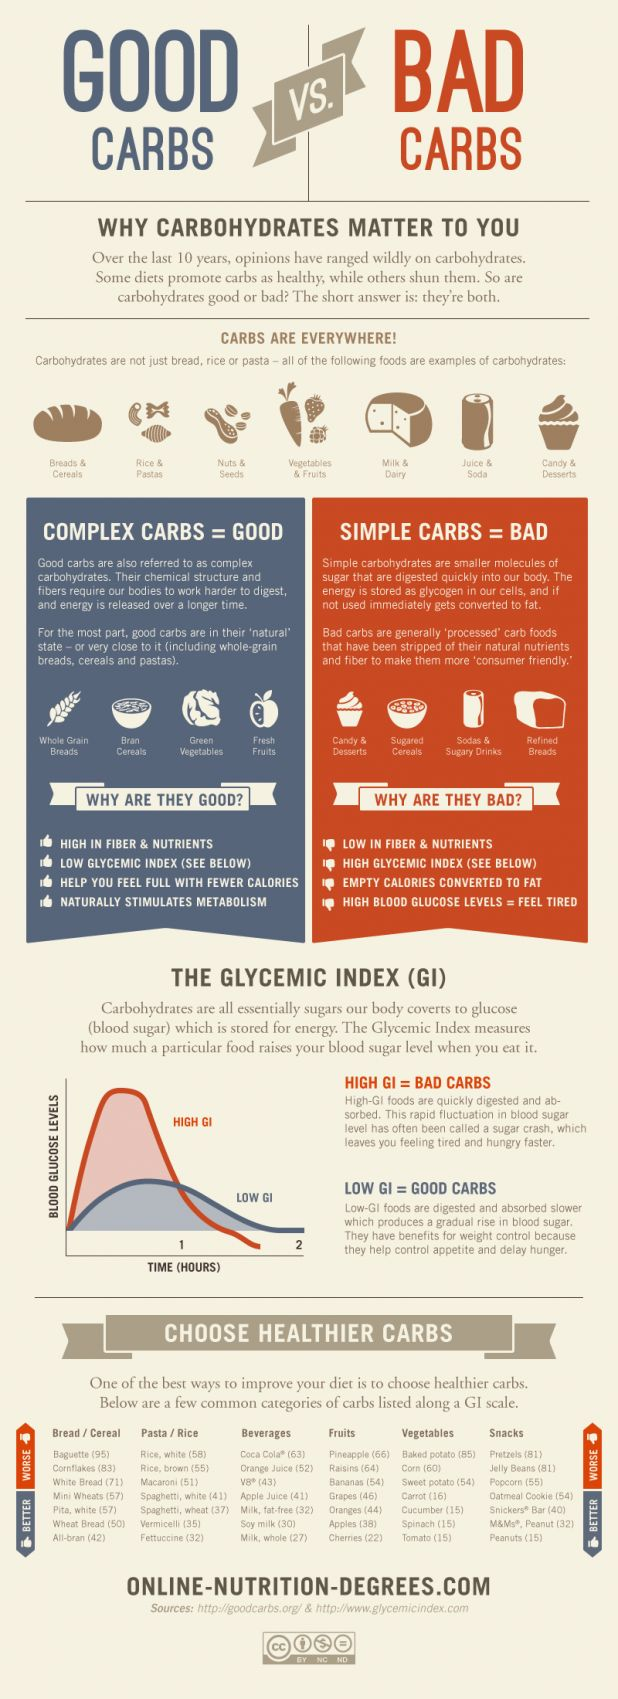 The nutrition wars over carbs during the last 10 years have led to some serious confusion about carbohydrates their effects on our bodies and their place in a balanced diet. Are carbs good for you or bad for you? The real answer is there are good carbs and bad carbs. This infographic helps you to distinguish between the two.